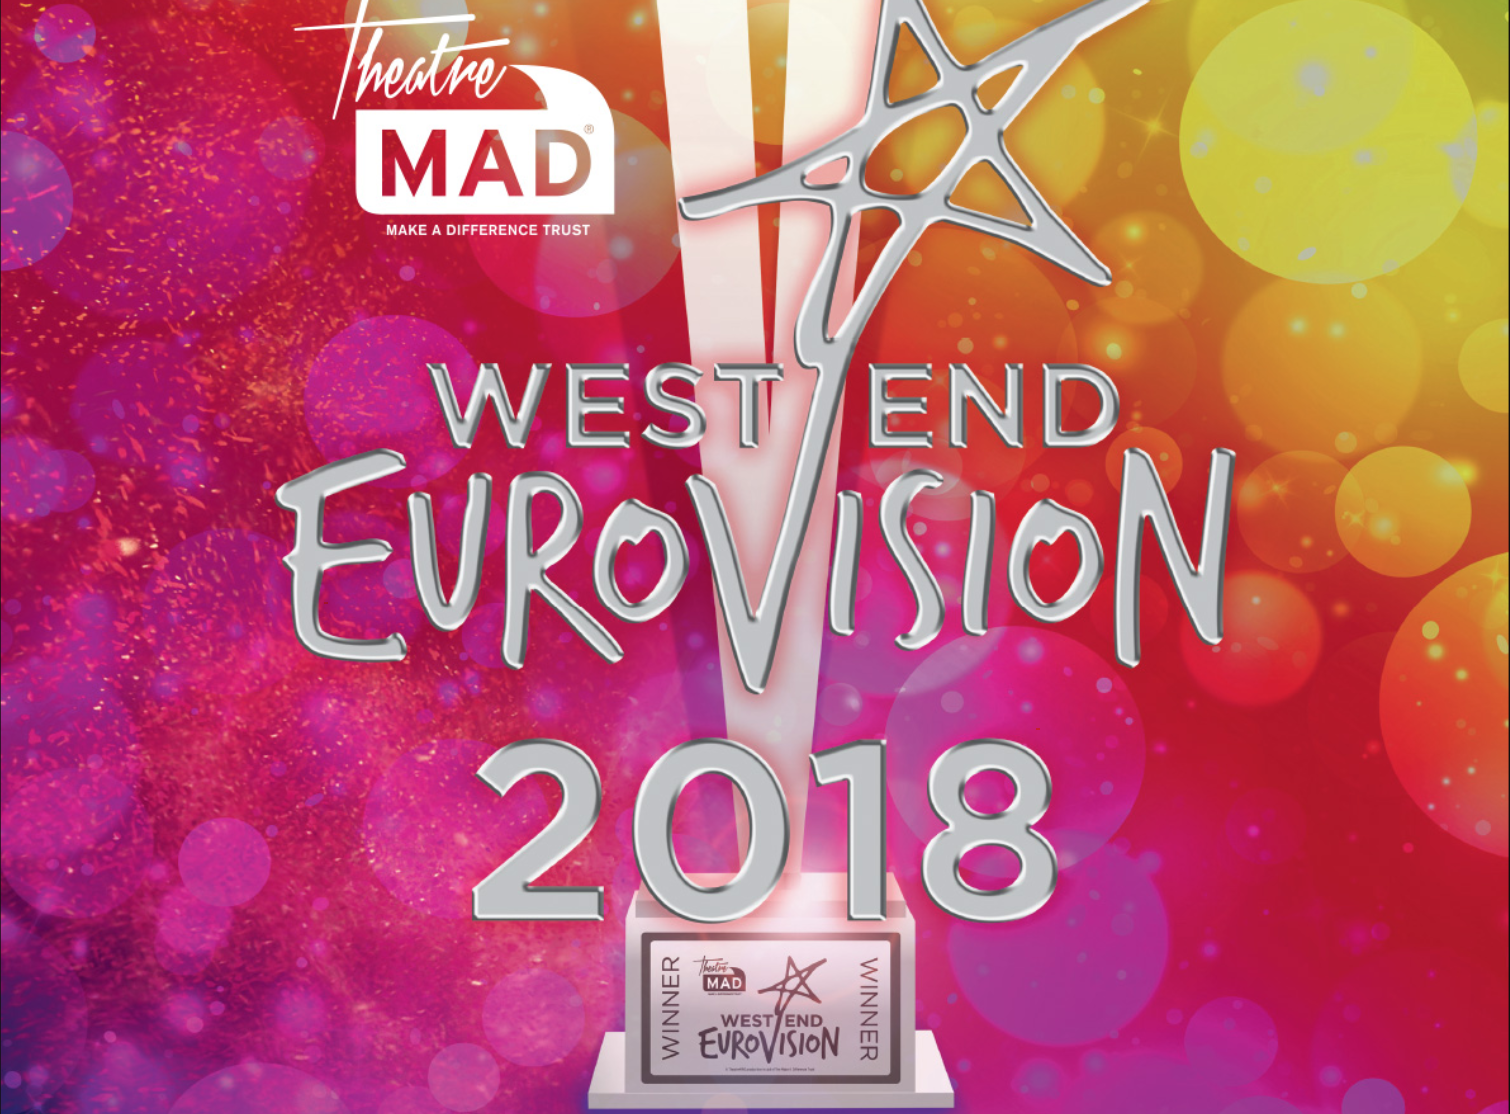 west-end-eurovision-returns-this-april-at-the-shaftesbury-theatre